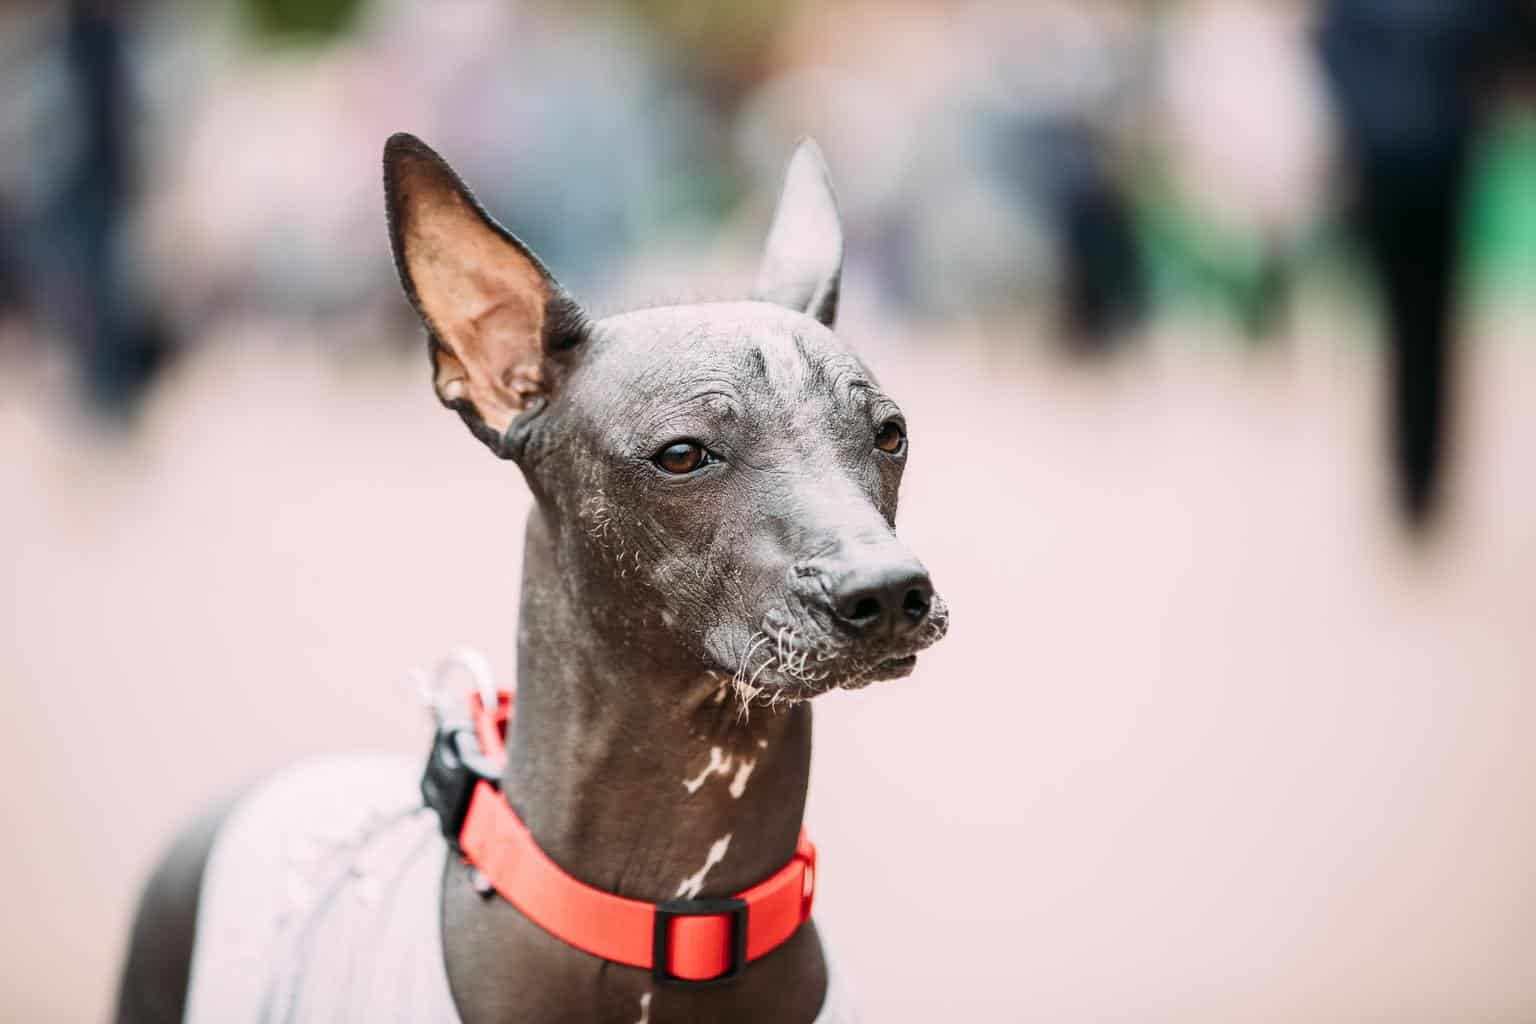 Xoloitzcuintli Mexican Hairless Dog In Outfit Playing In City Park